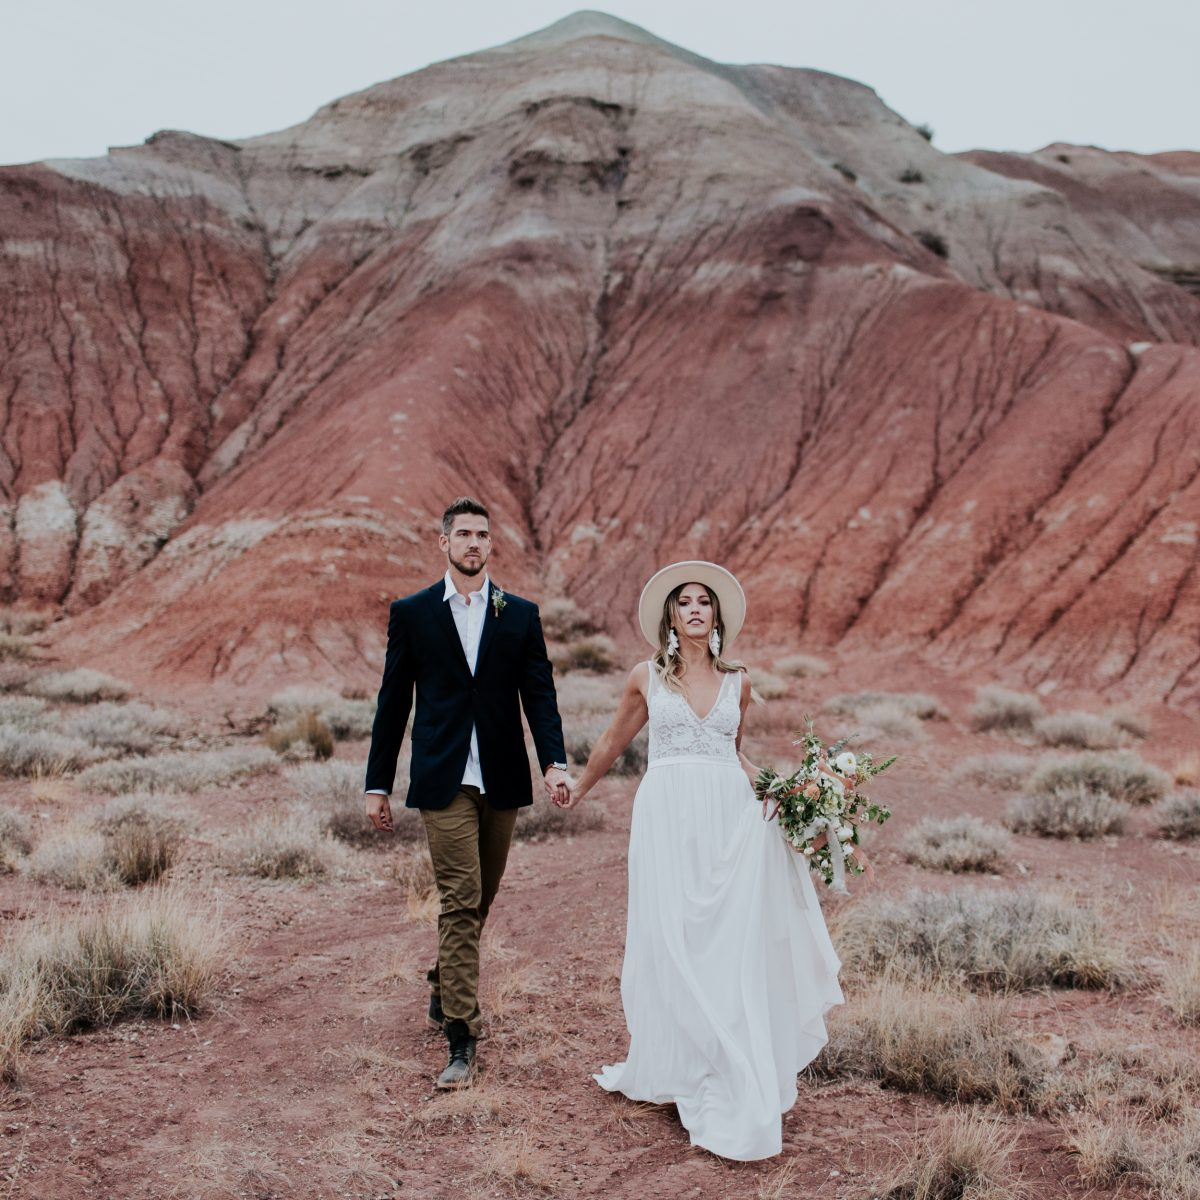 stylish new mexico elopement inspiration adventure travel desert